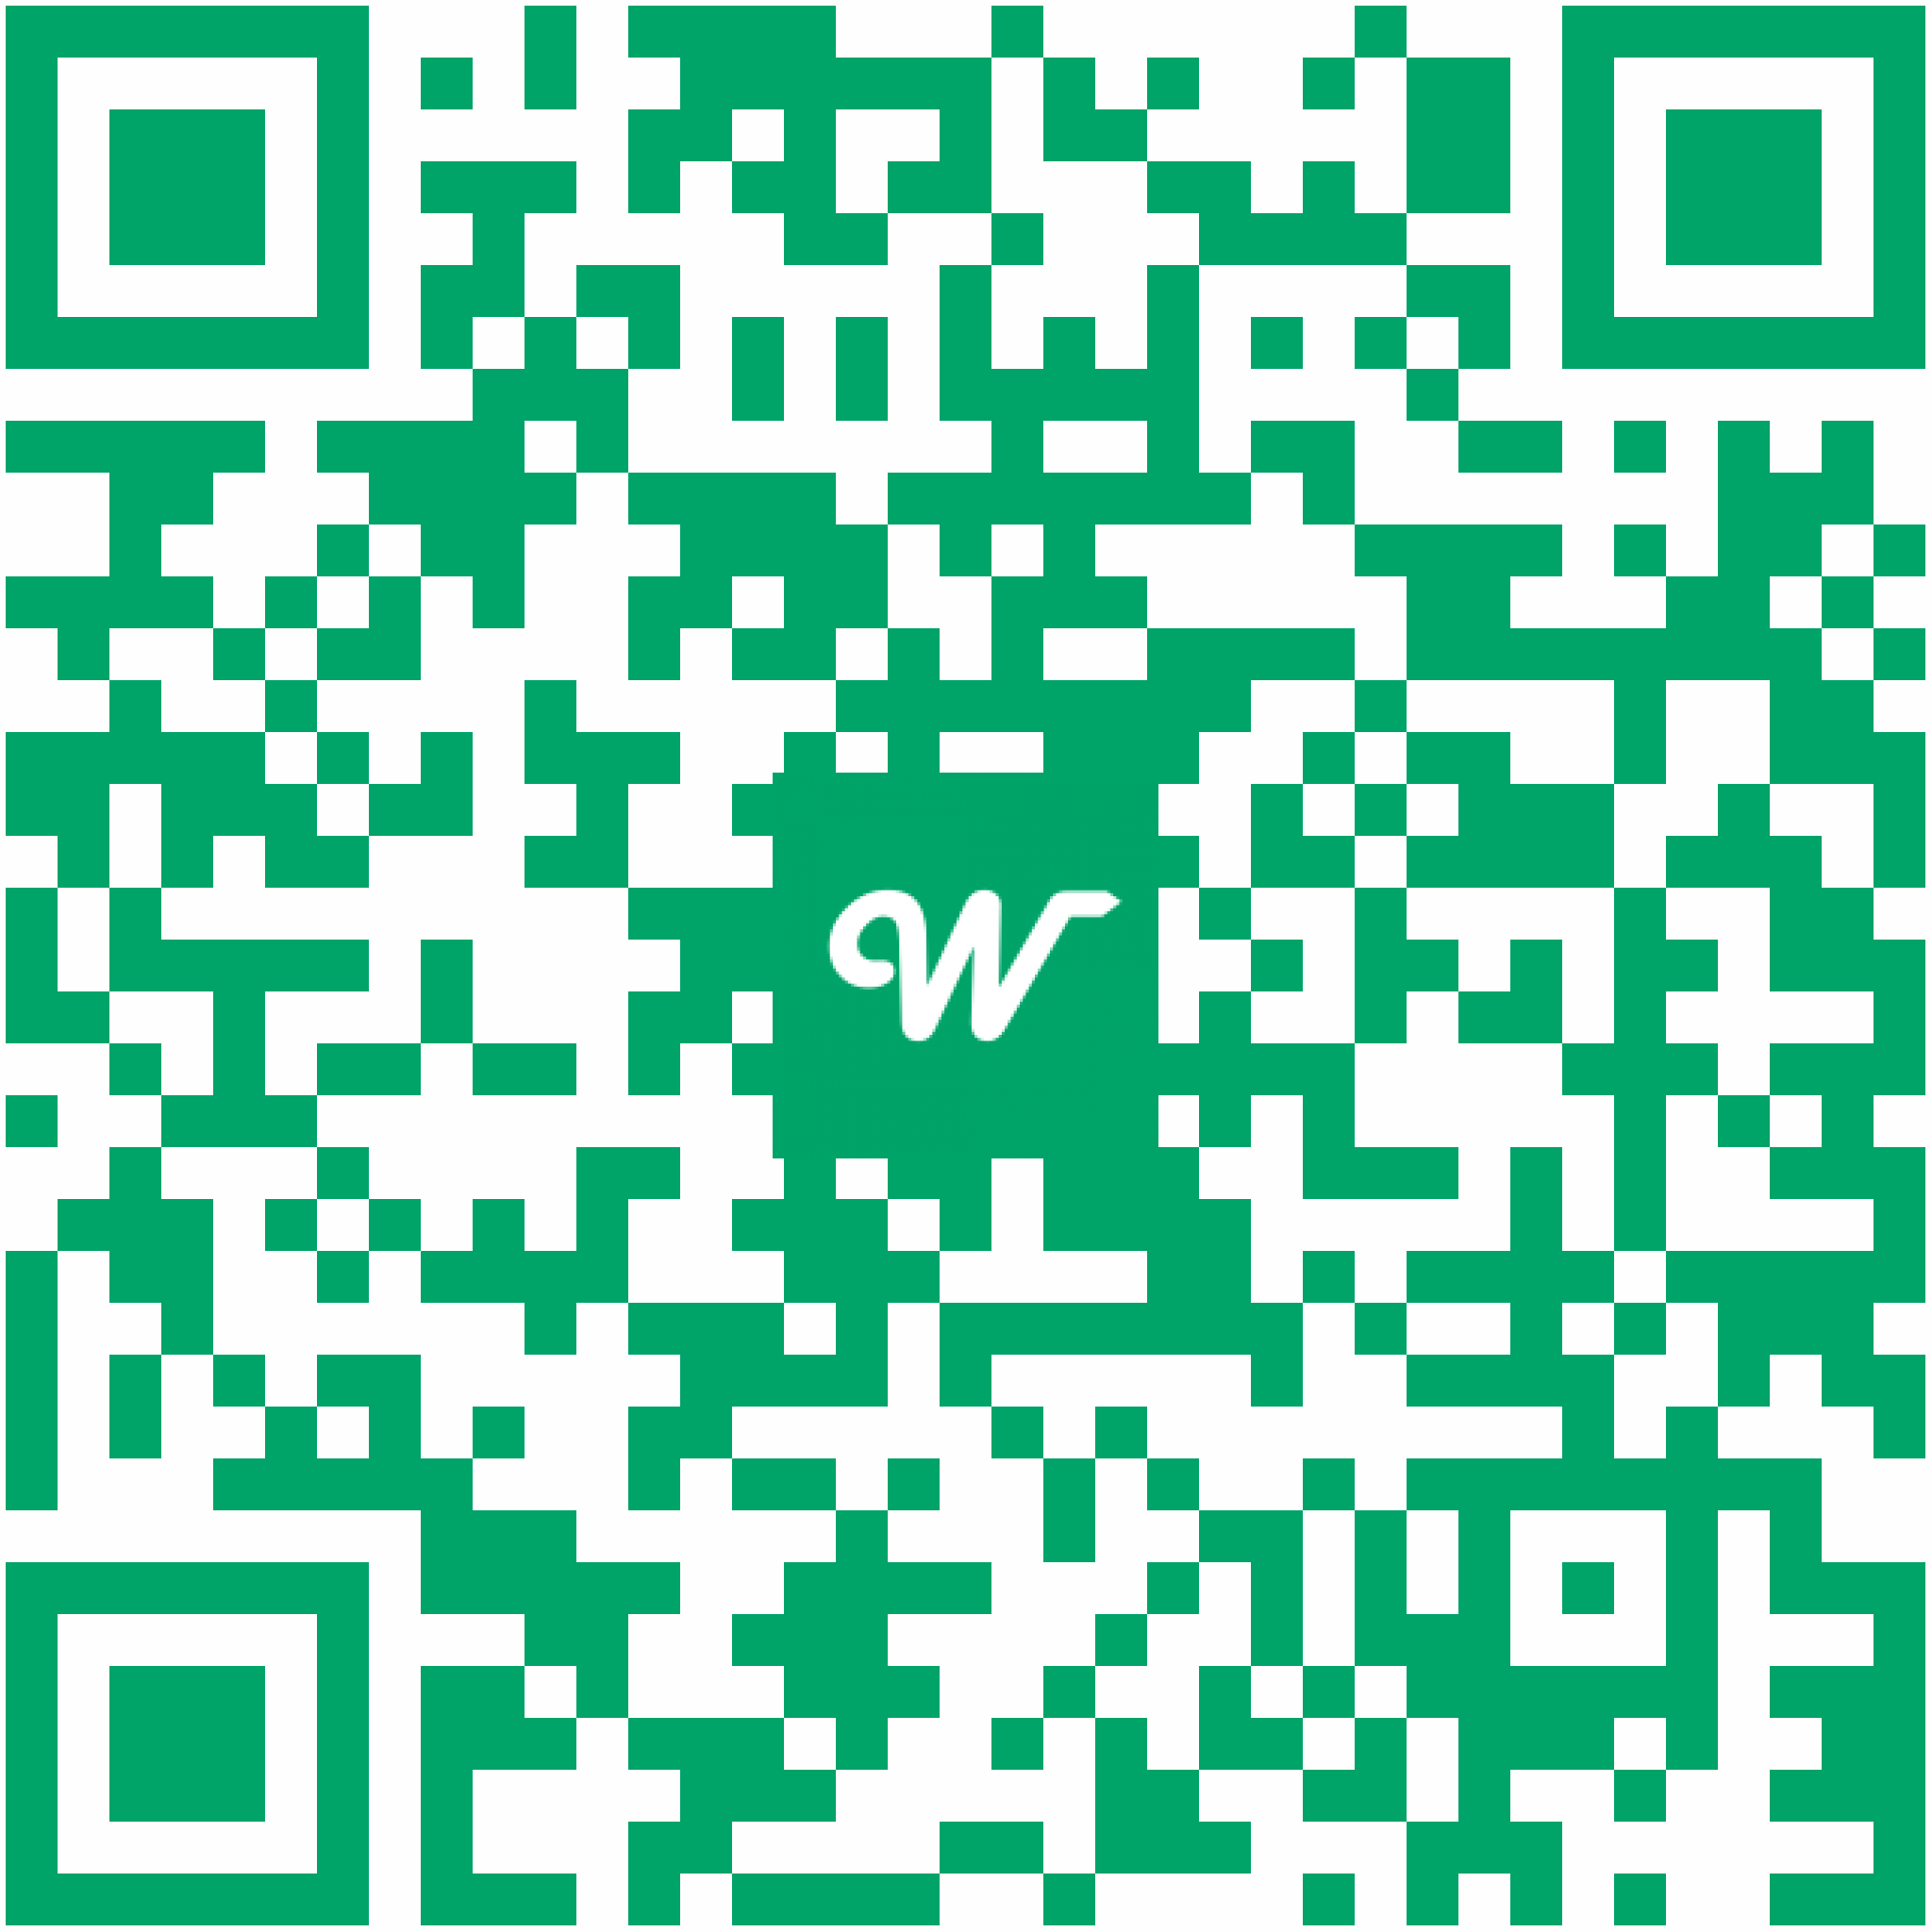 Printable QR code for Northern Region Infrastructure